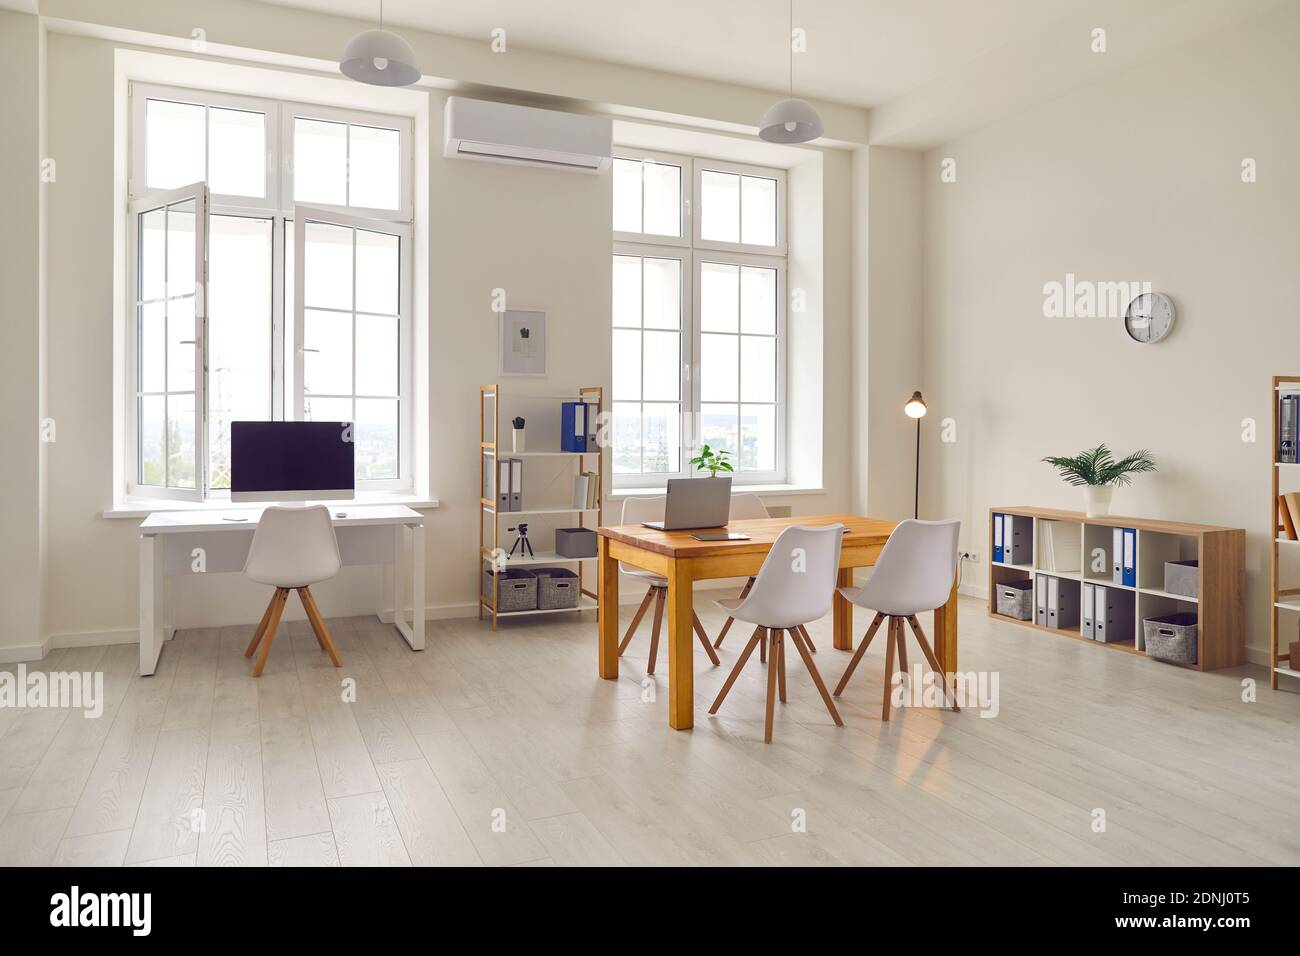 Interior of modern business office or workplace space Stock Photo